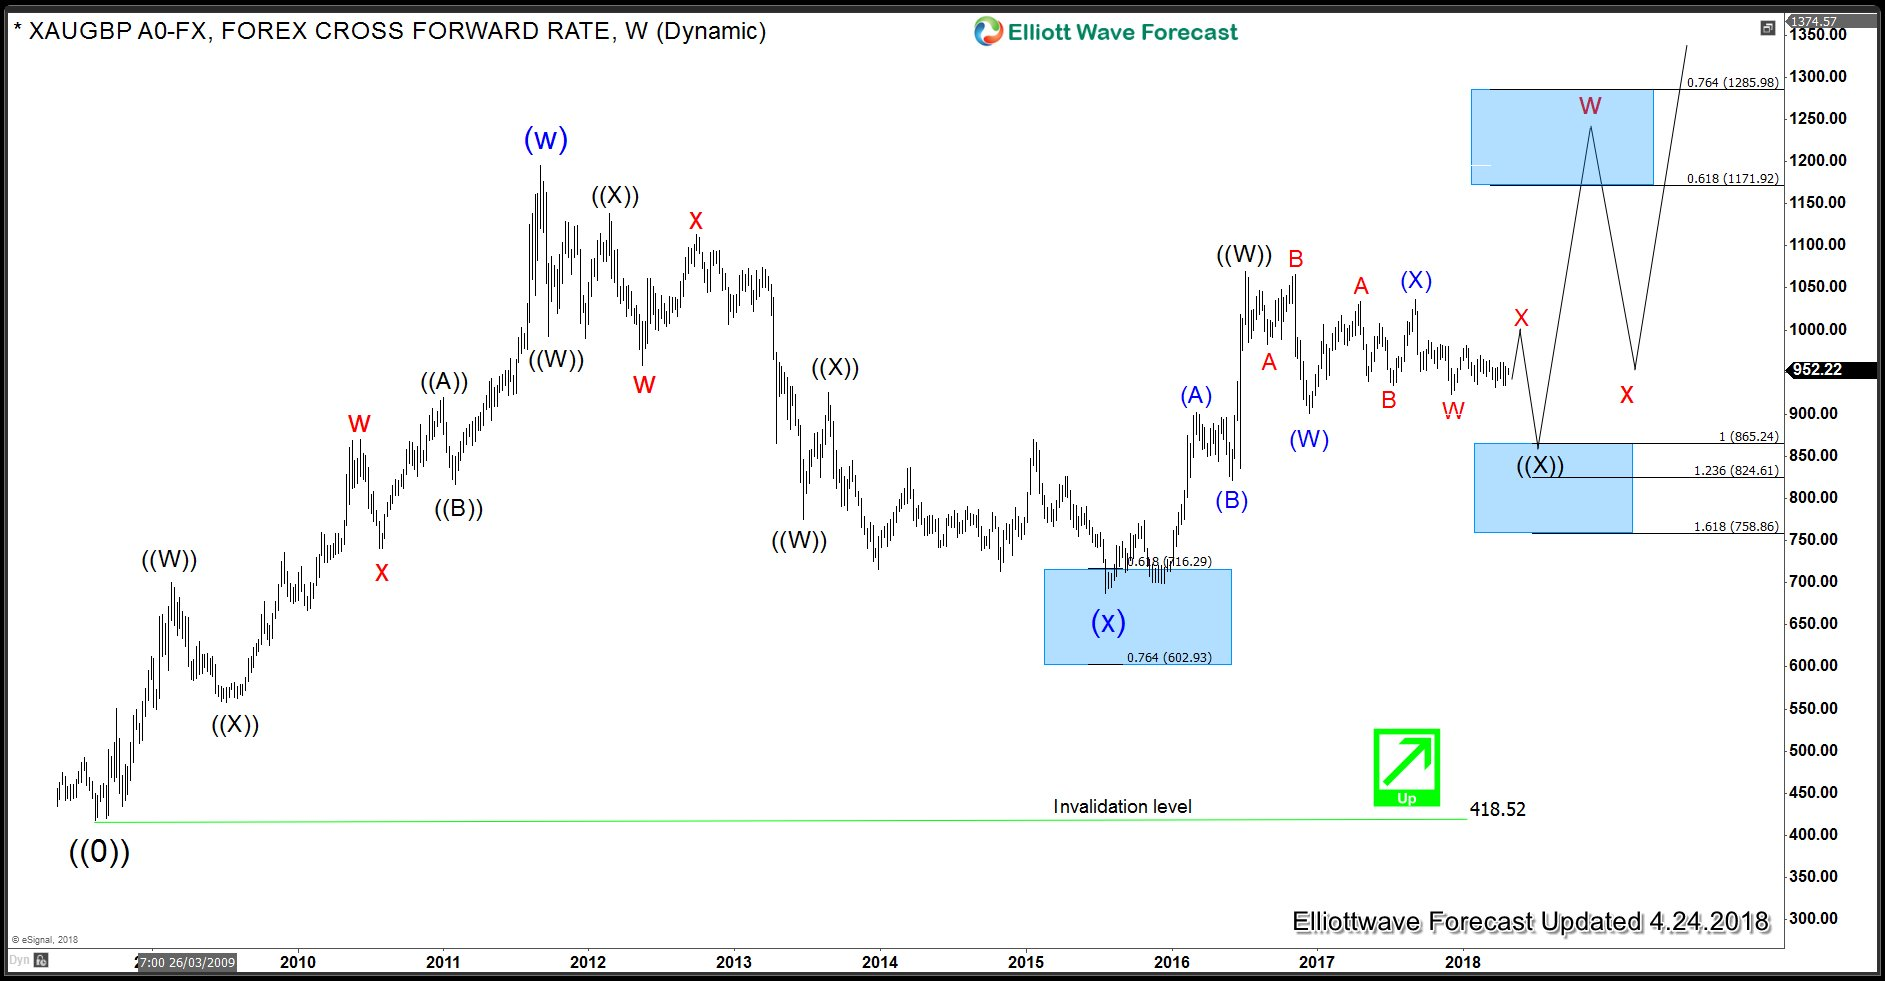 Gold versus British Pound - Weekly Elliott Wave Analysis